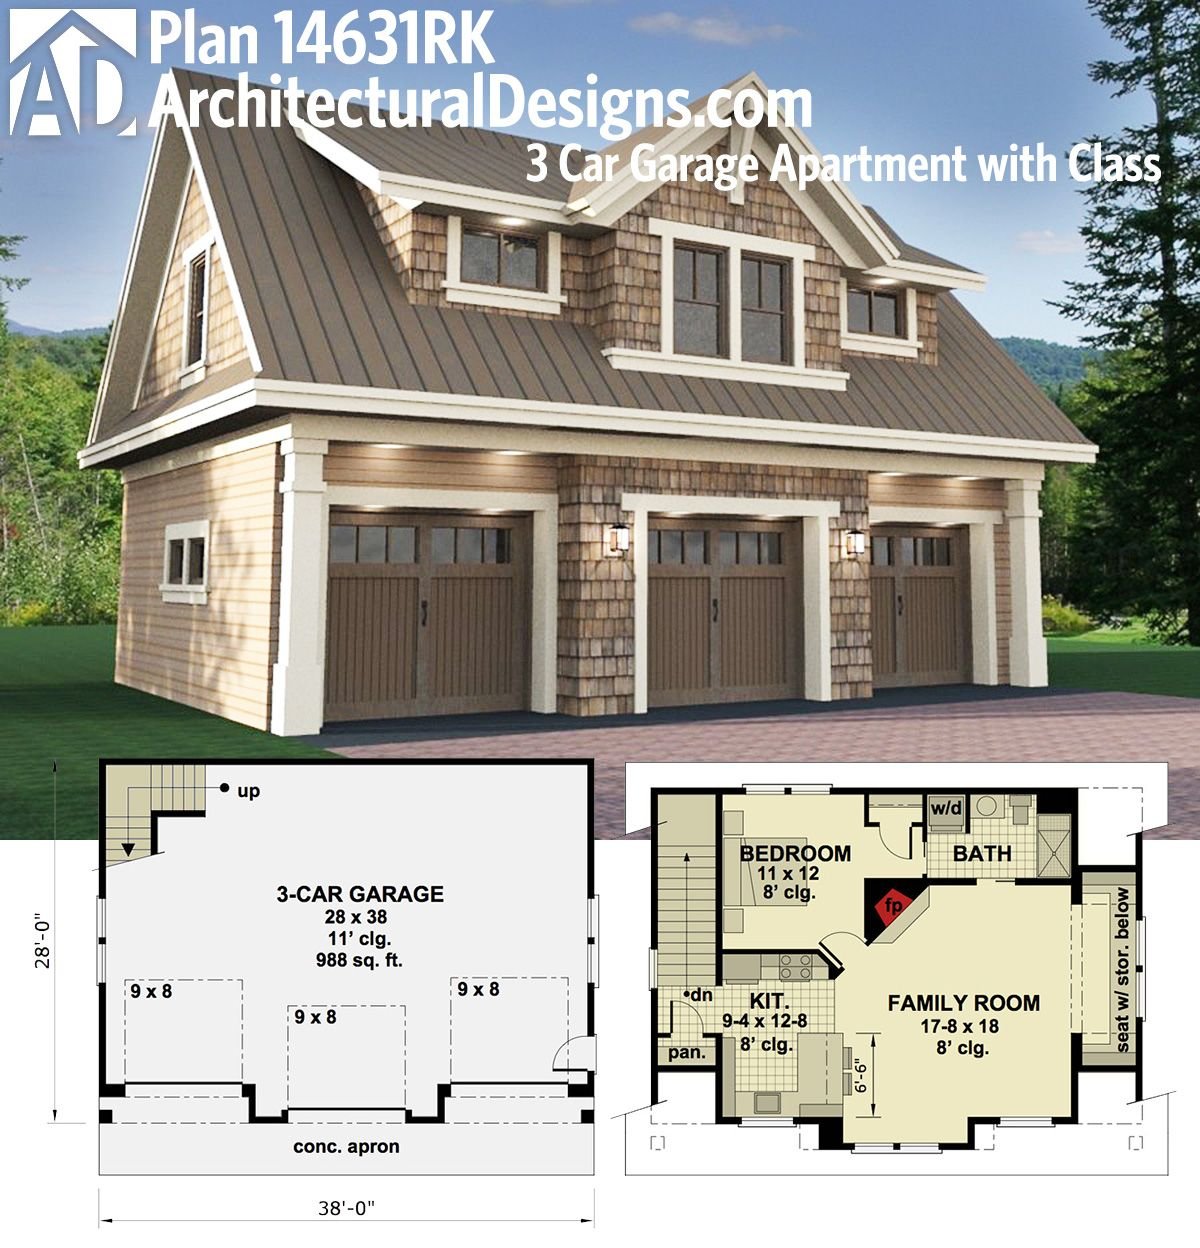 Plan 14631rk 3 car garage apartment with class carriage Garage square foot cost